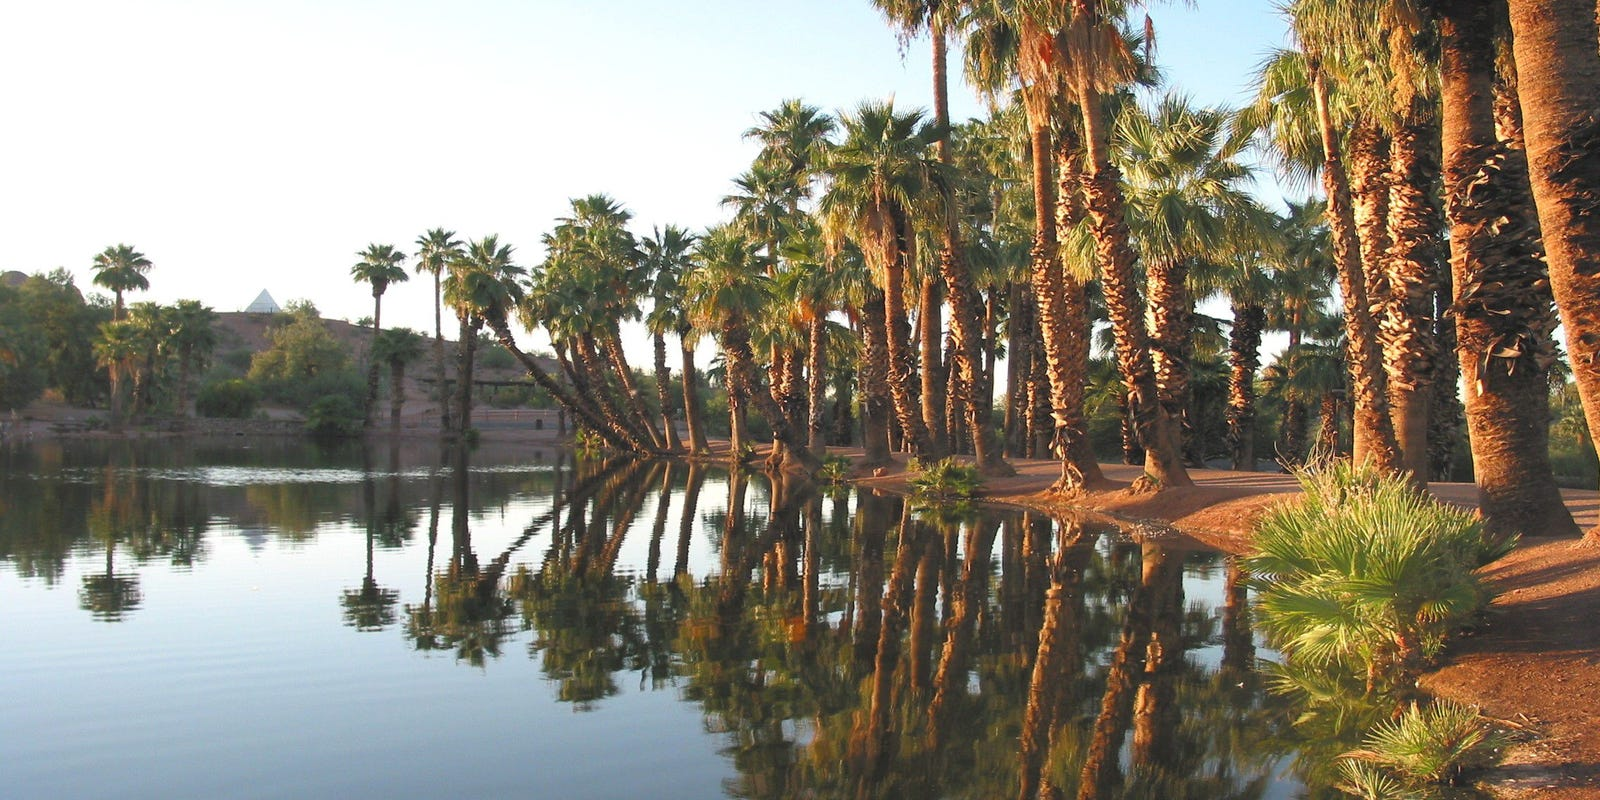 Are palm trees native to Arizona? The Valley 101 podcast found out